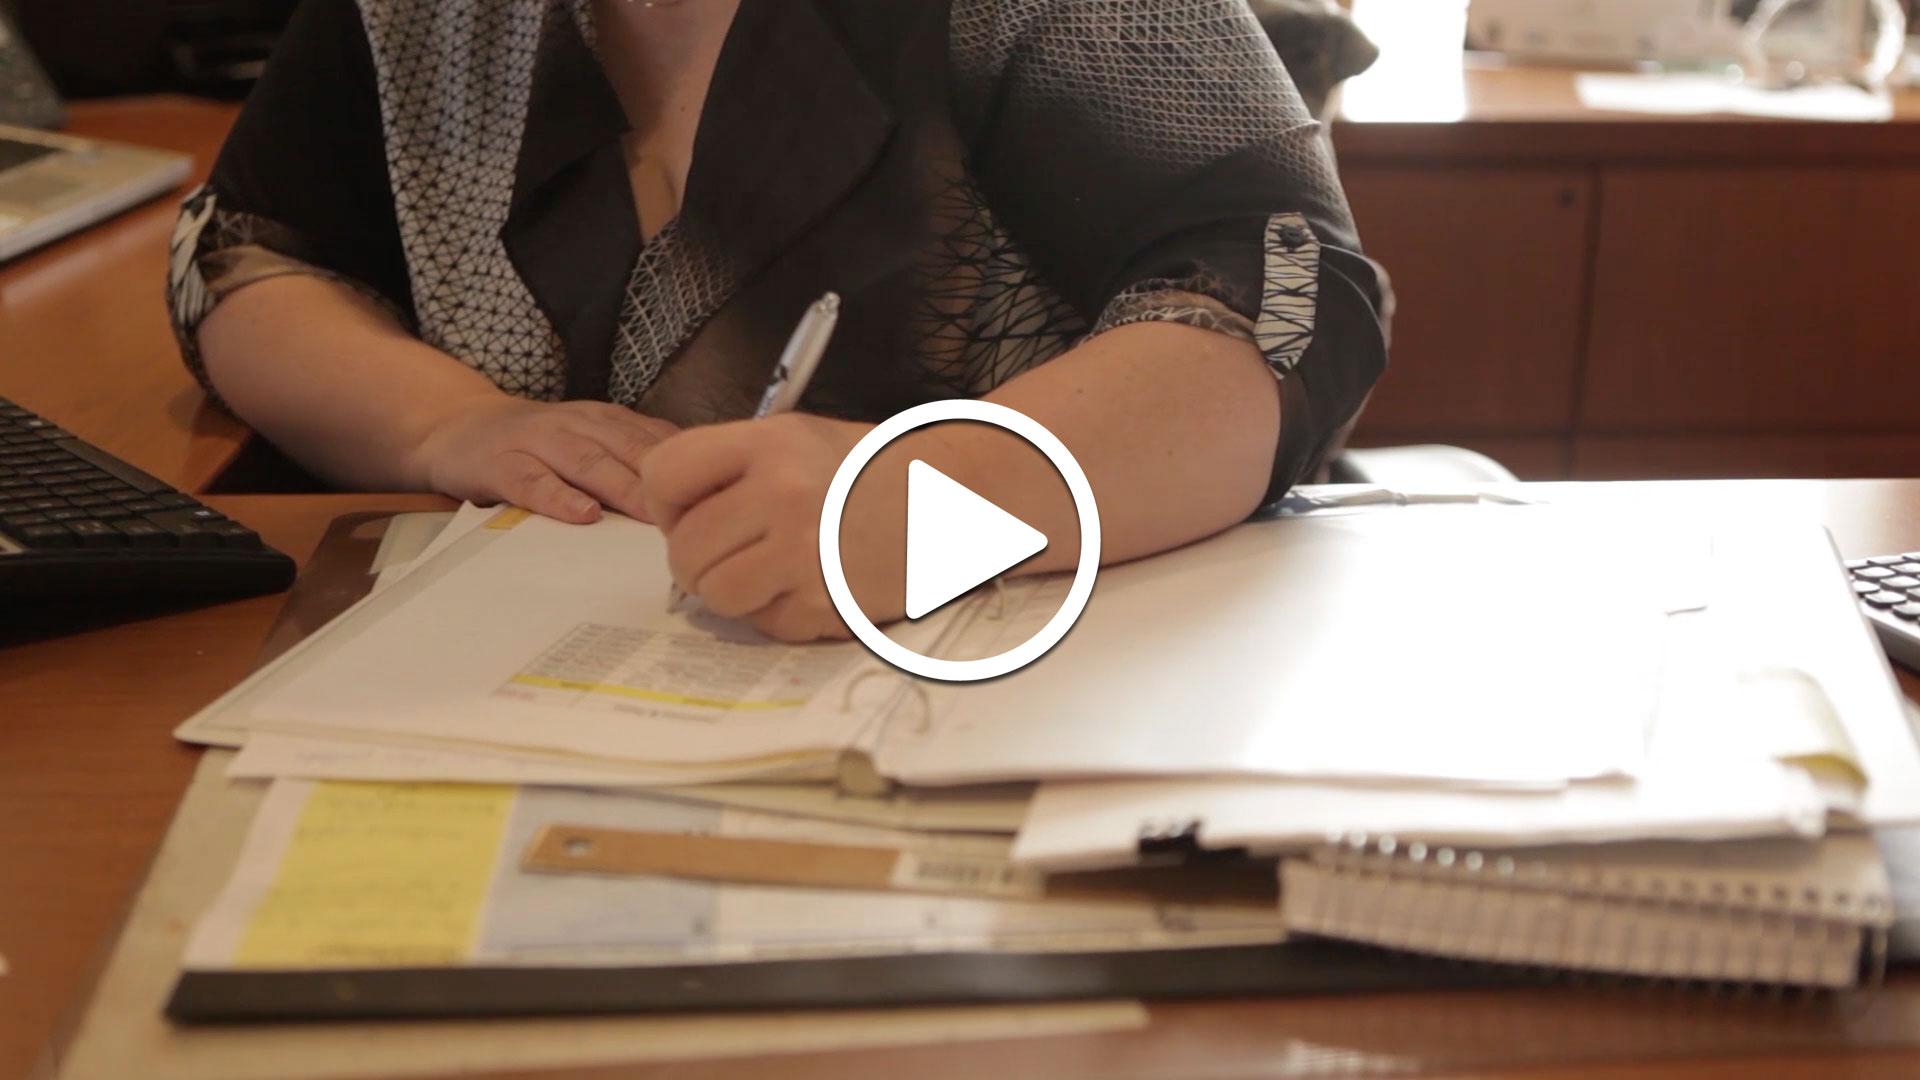 Watch our careers video for available job opening Accountant in Chicago, IL